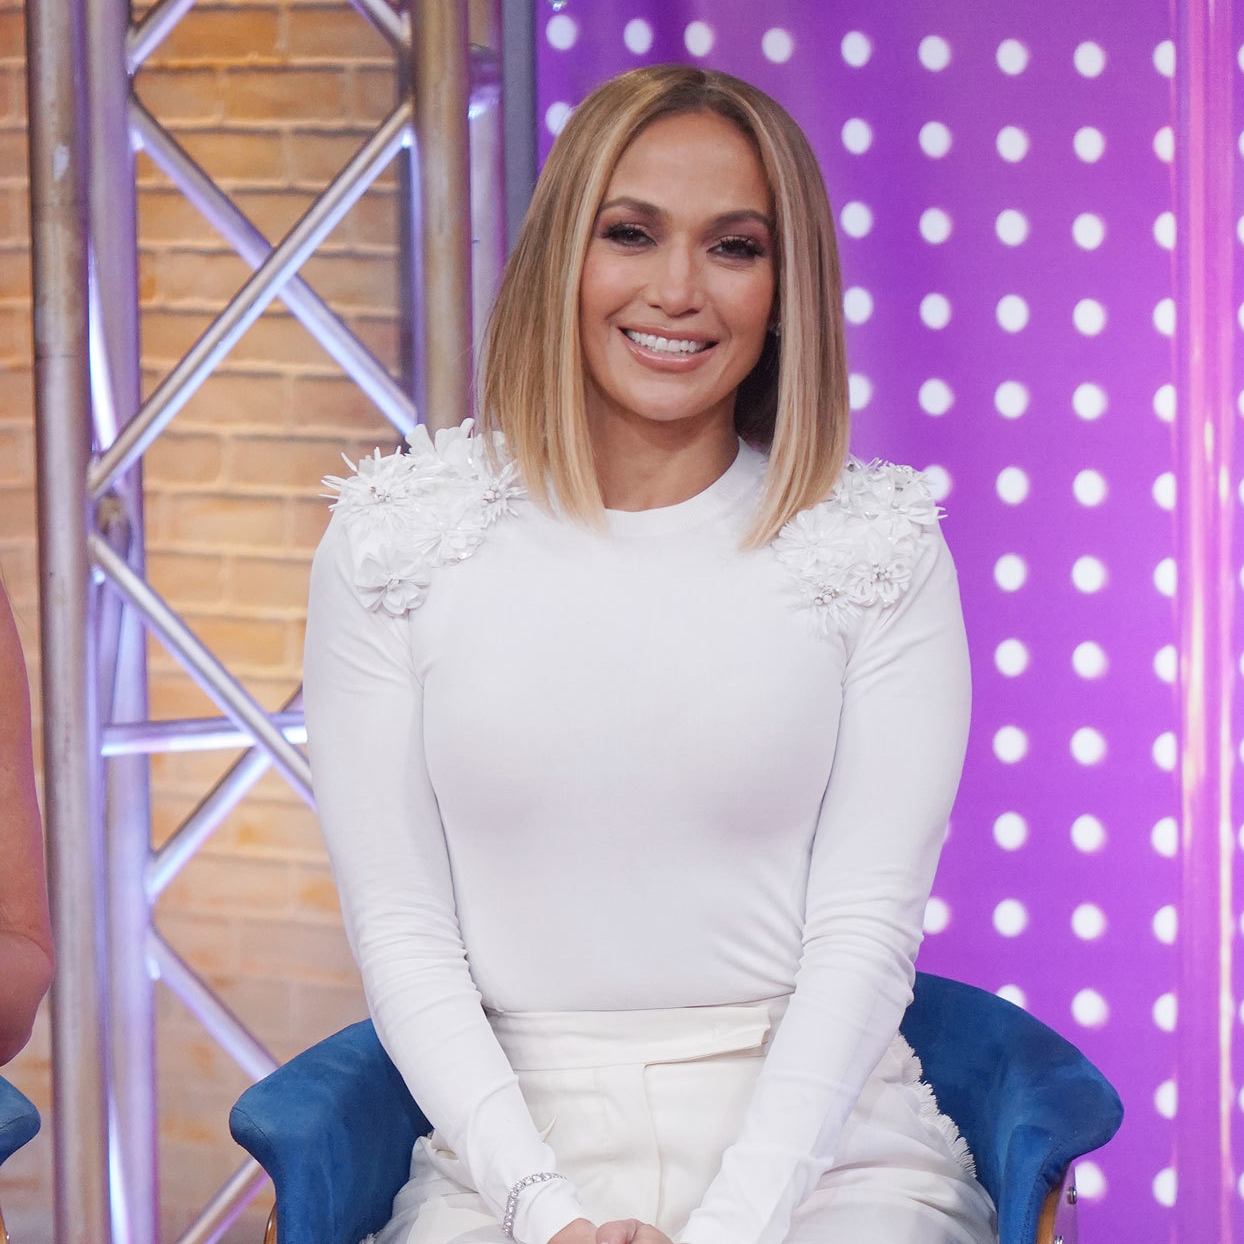 8 Secrets to J.Lo's Killer Physique